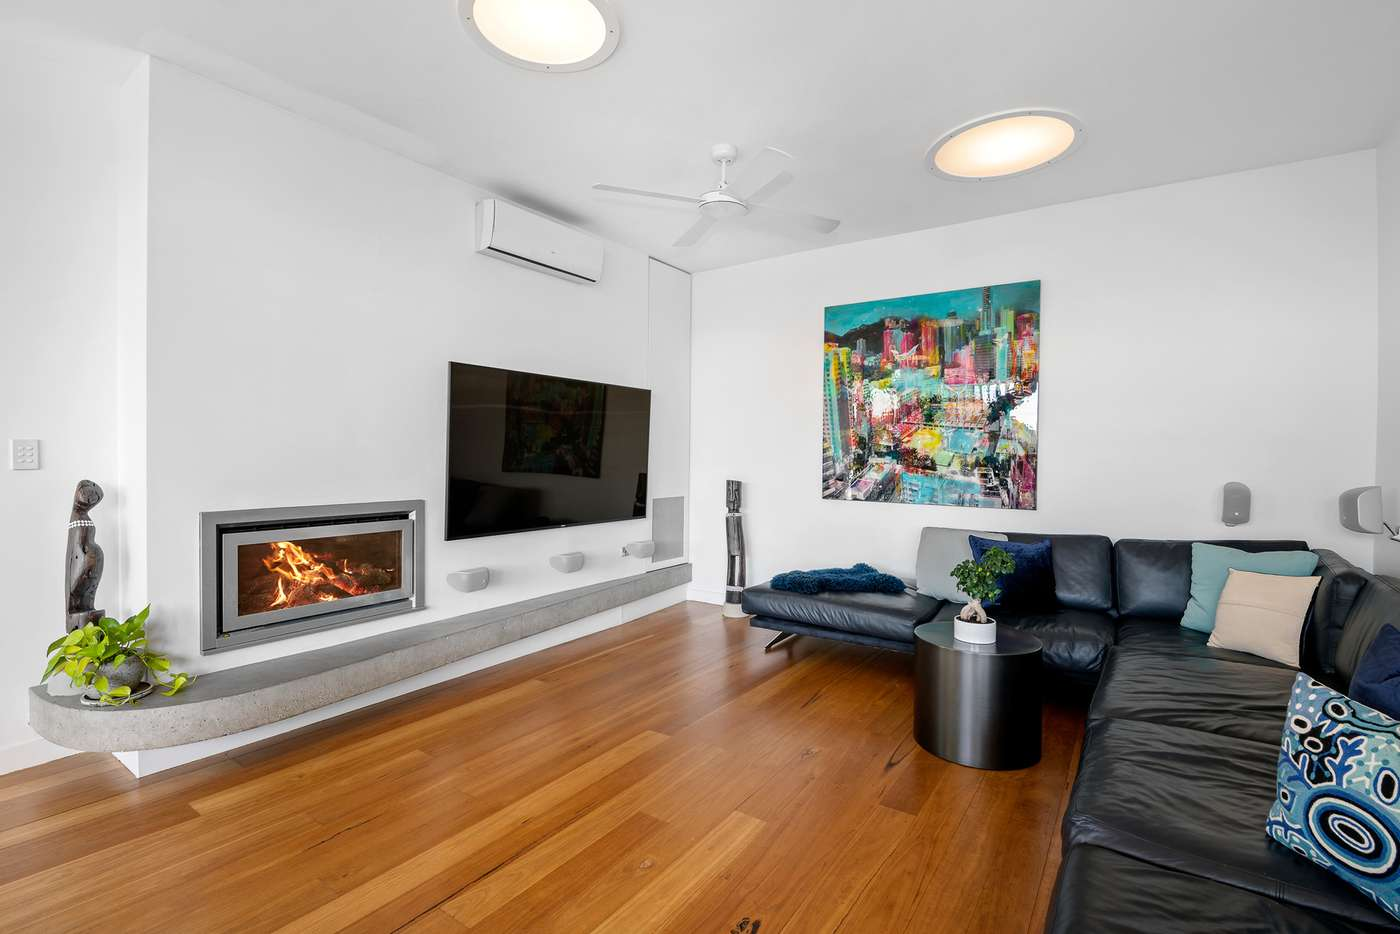 Fifth view of Homely house listing, 4 Gartfern Avenue, Wareemba NSW 2046